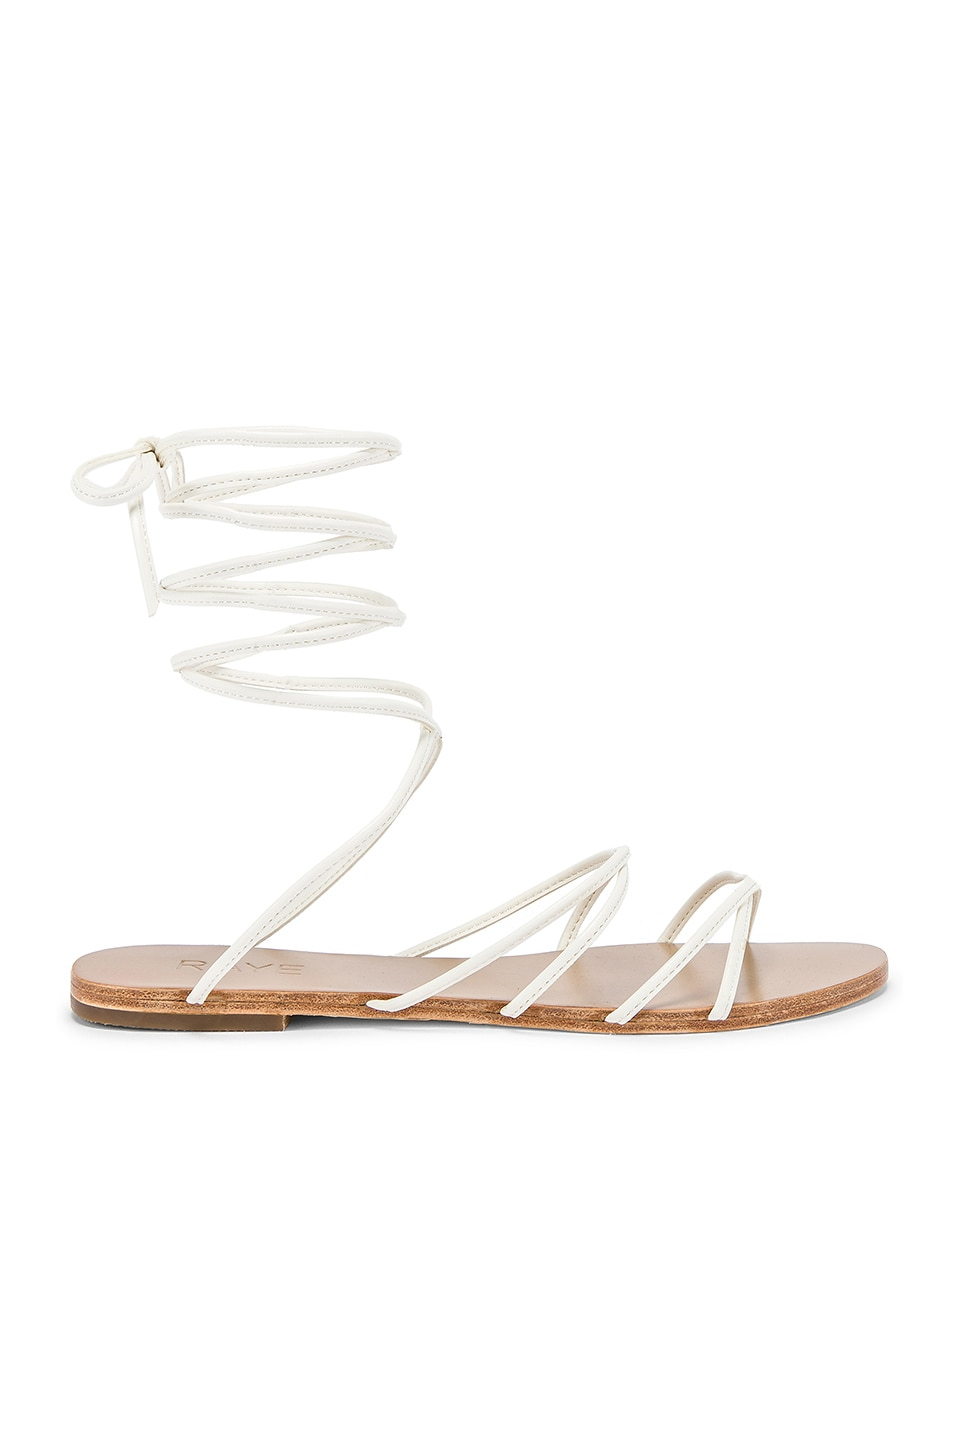 RAYE Collette Sandal in White